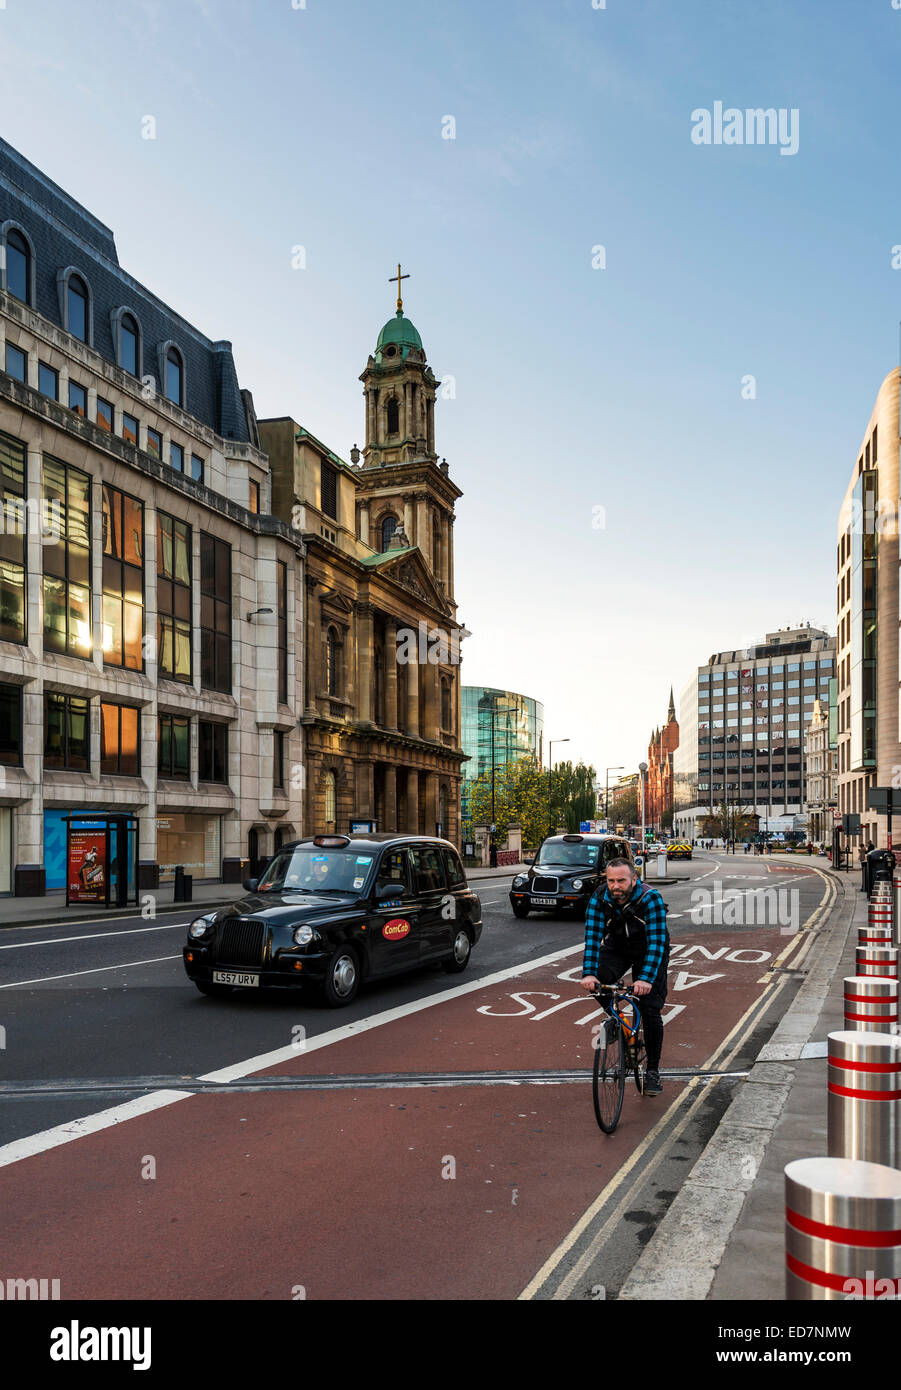 On Holborn Viaduct looking toward Holborn, a cyclist rides down a bus lane, London Black Cabs pass by - Stock Image